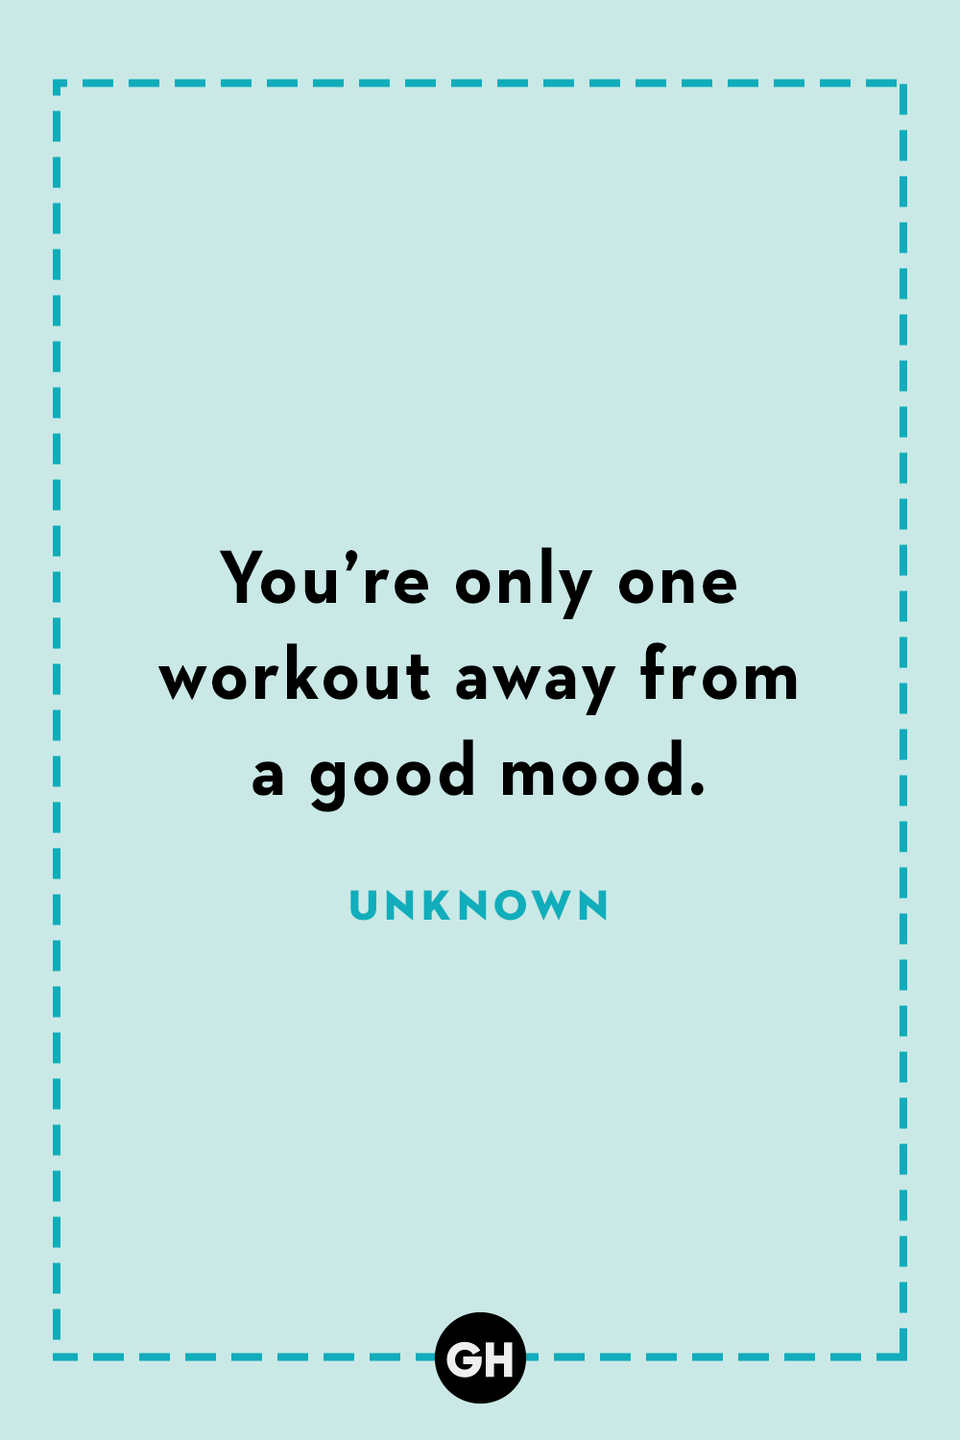 <p>You're only one workout away from a good mood.</p>